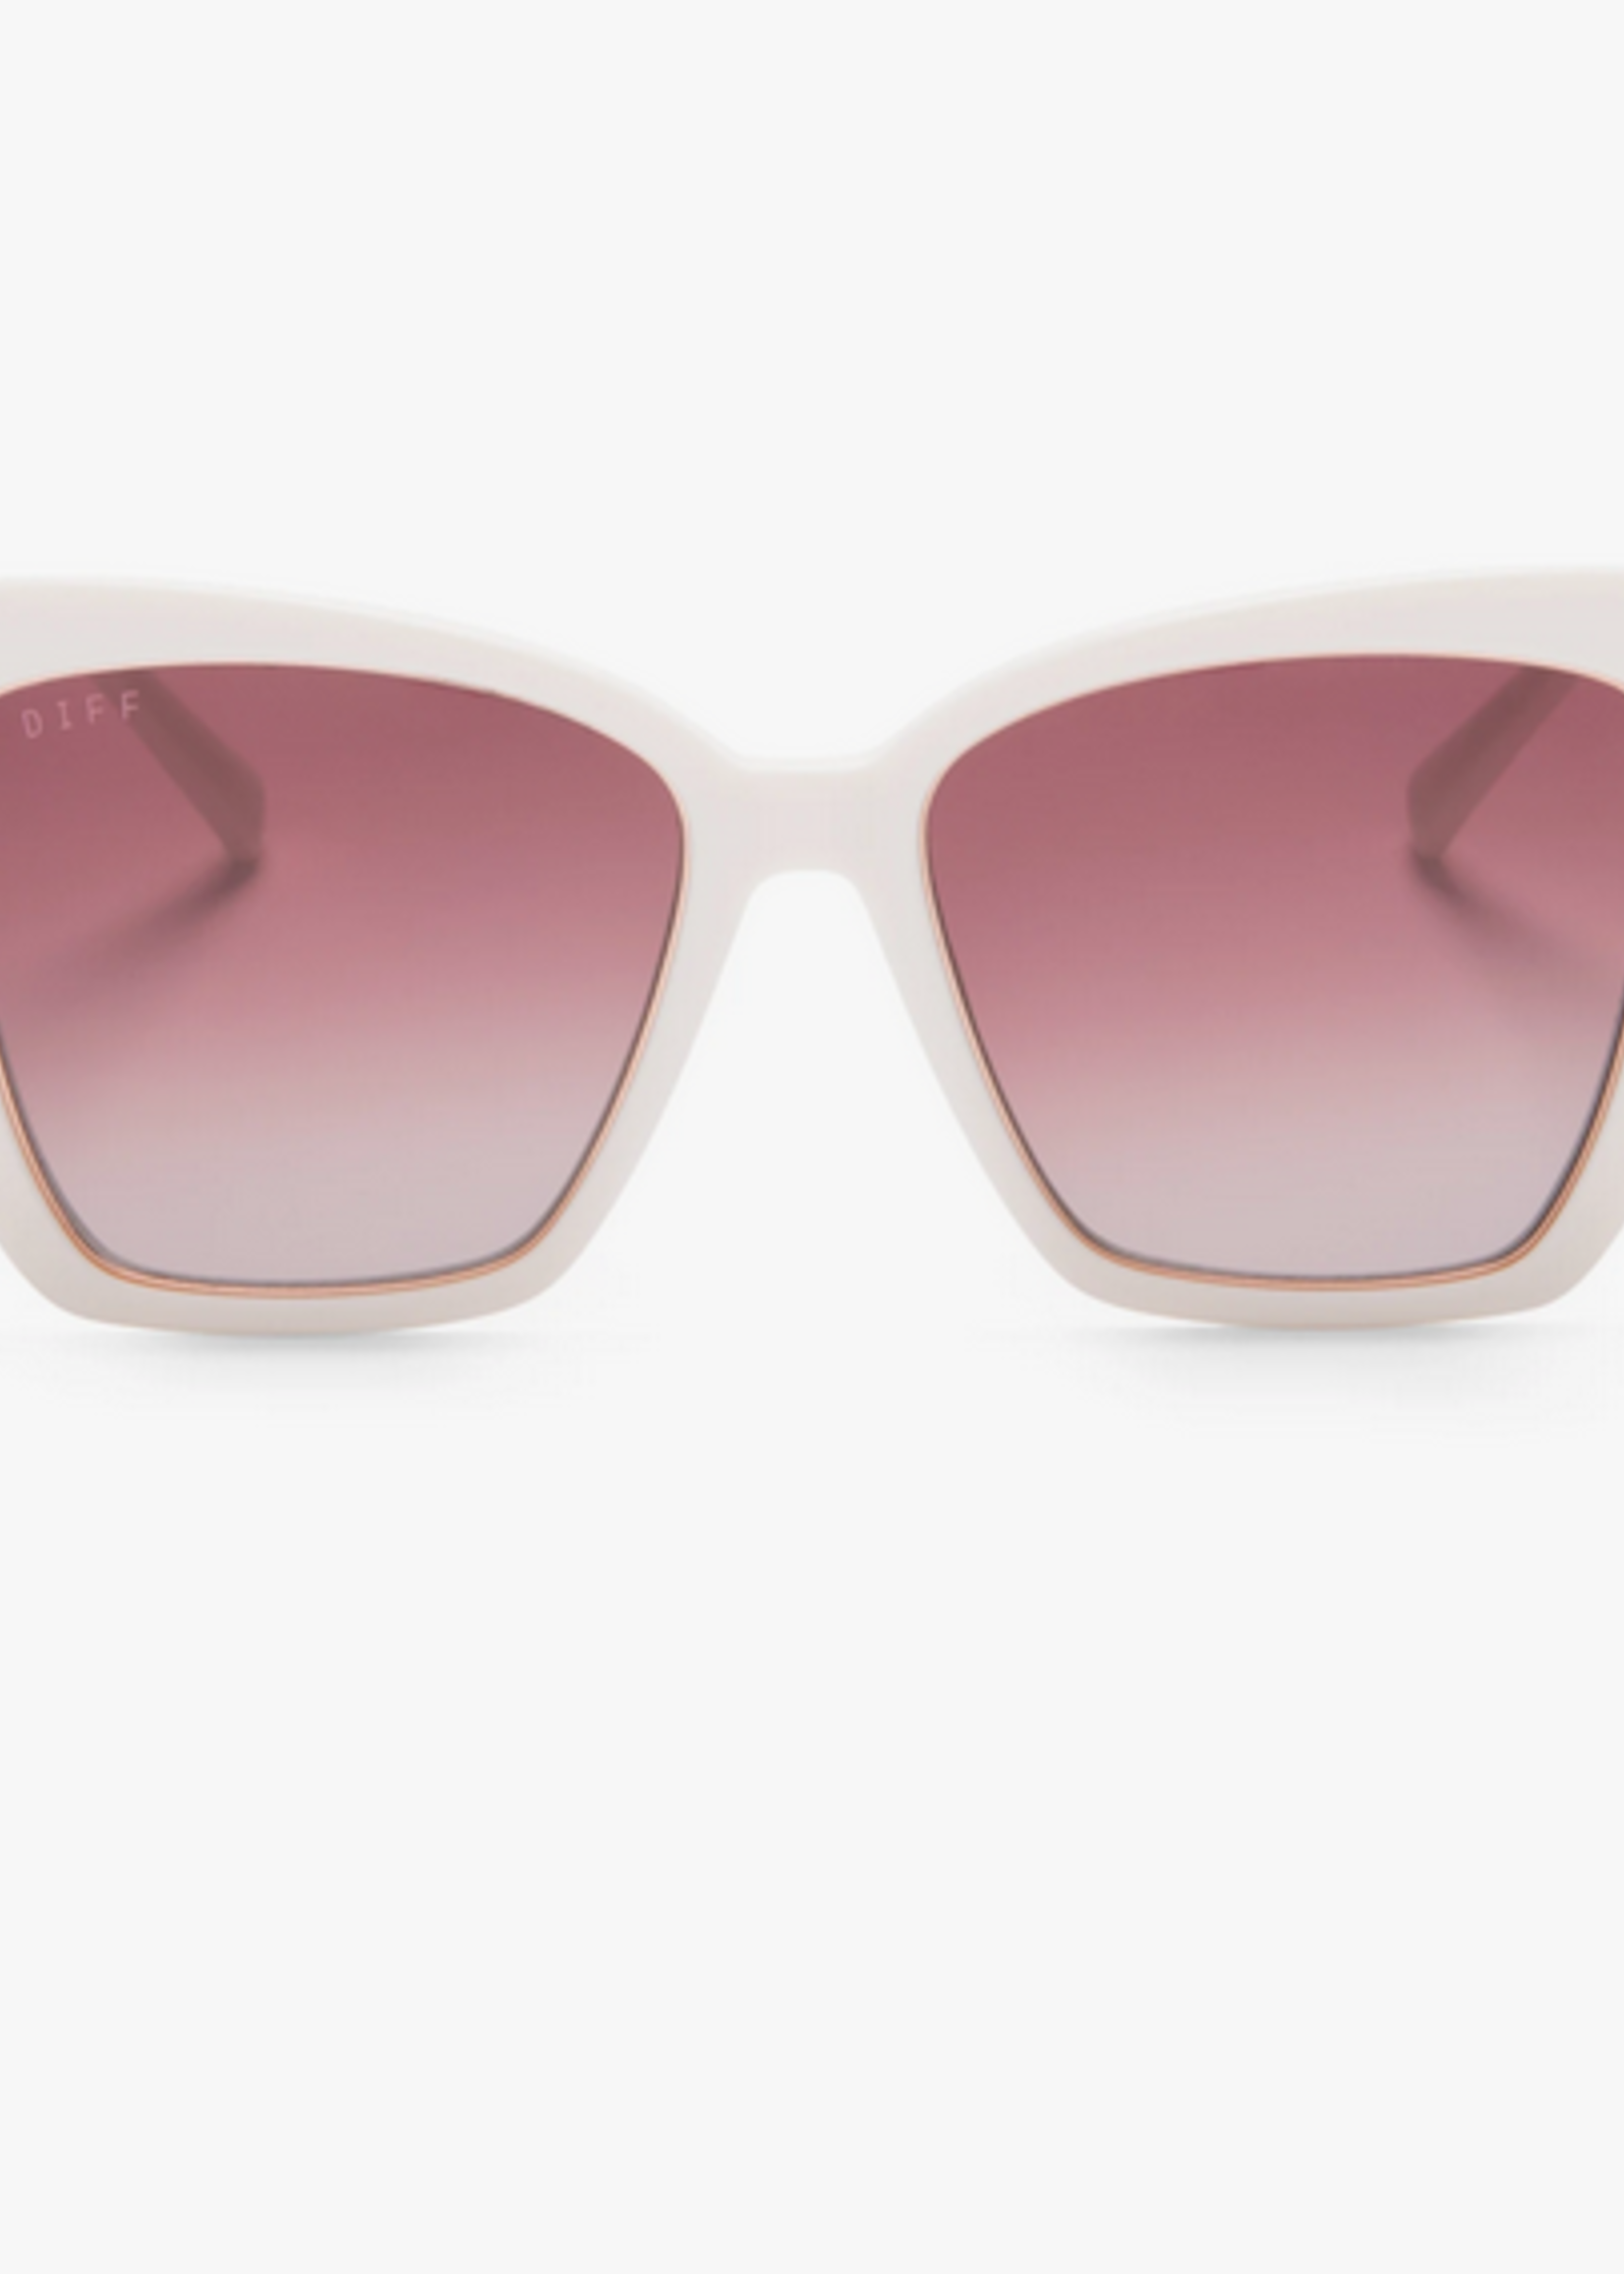 Elitaire Boutique Becky IV in Ivory + Wine Gradient